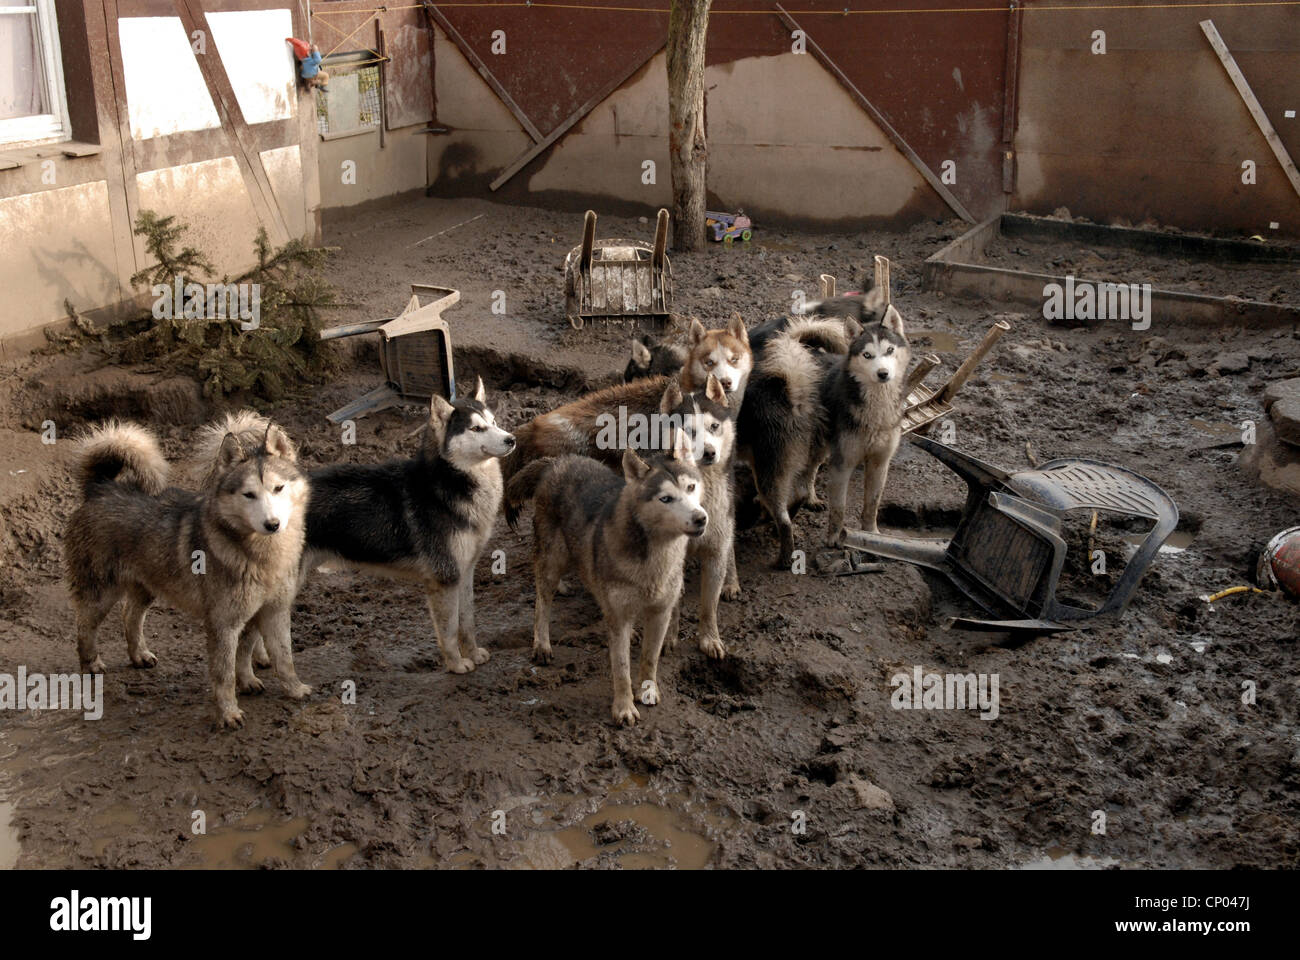 domestic dog (Canis lupus f. familiaris), scruffy dogs on dirty site, animal hoarding, Germany, - Stock Image